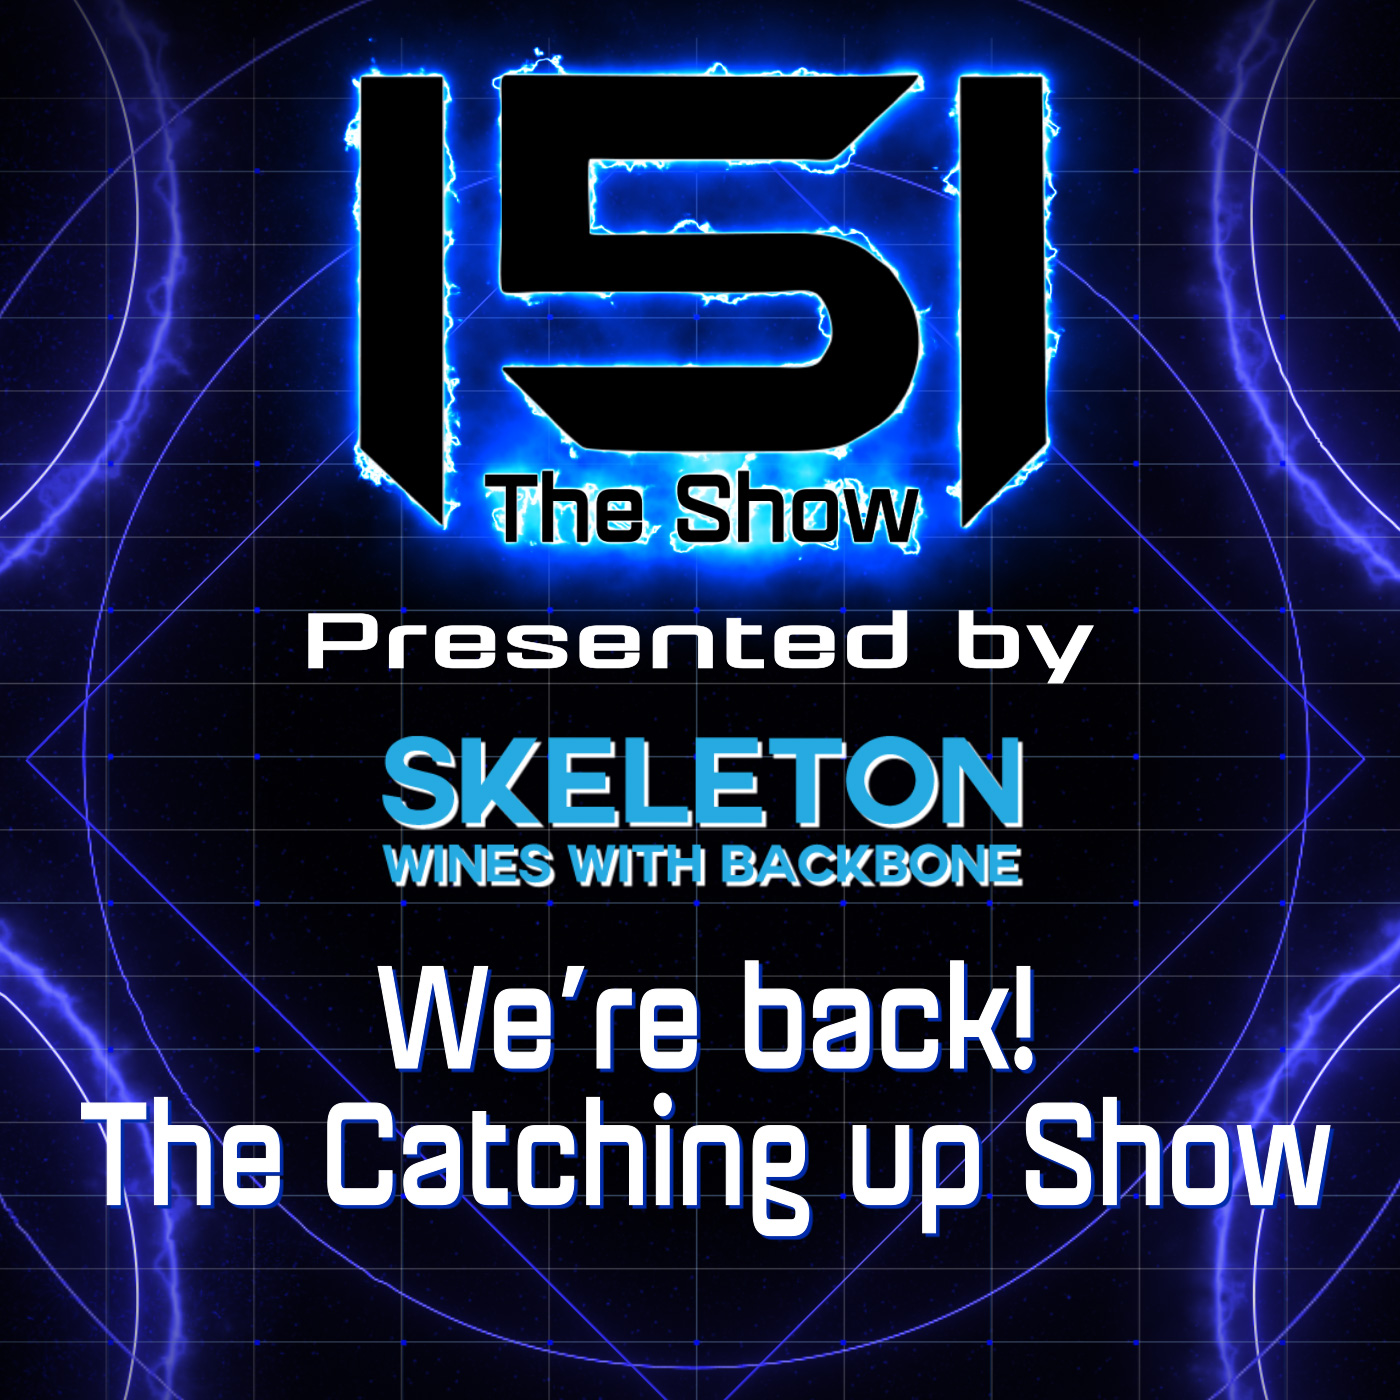 The Catching Up Show